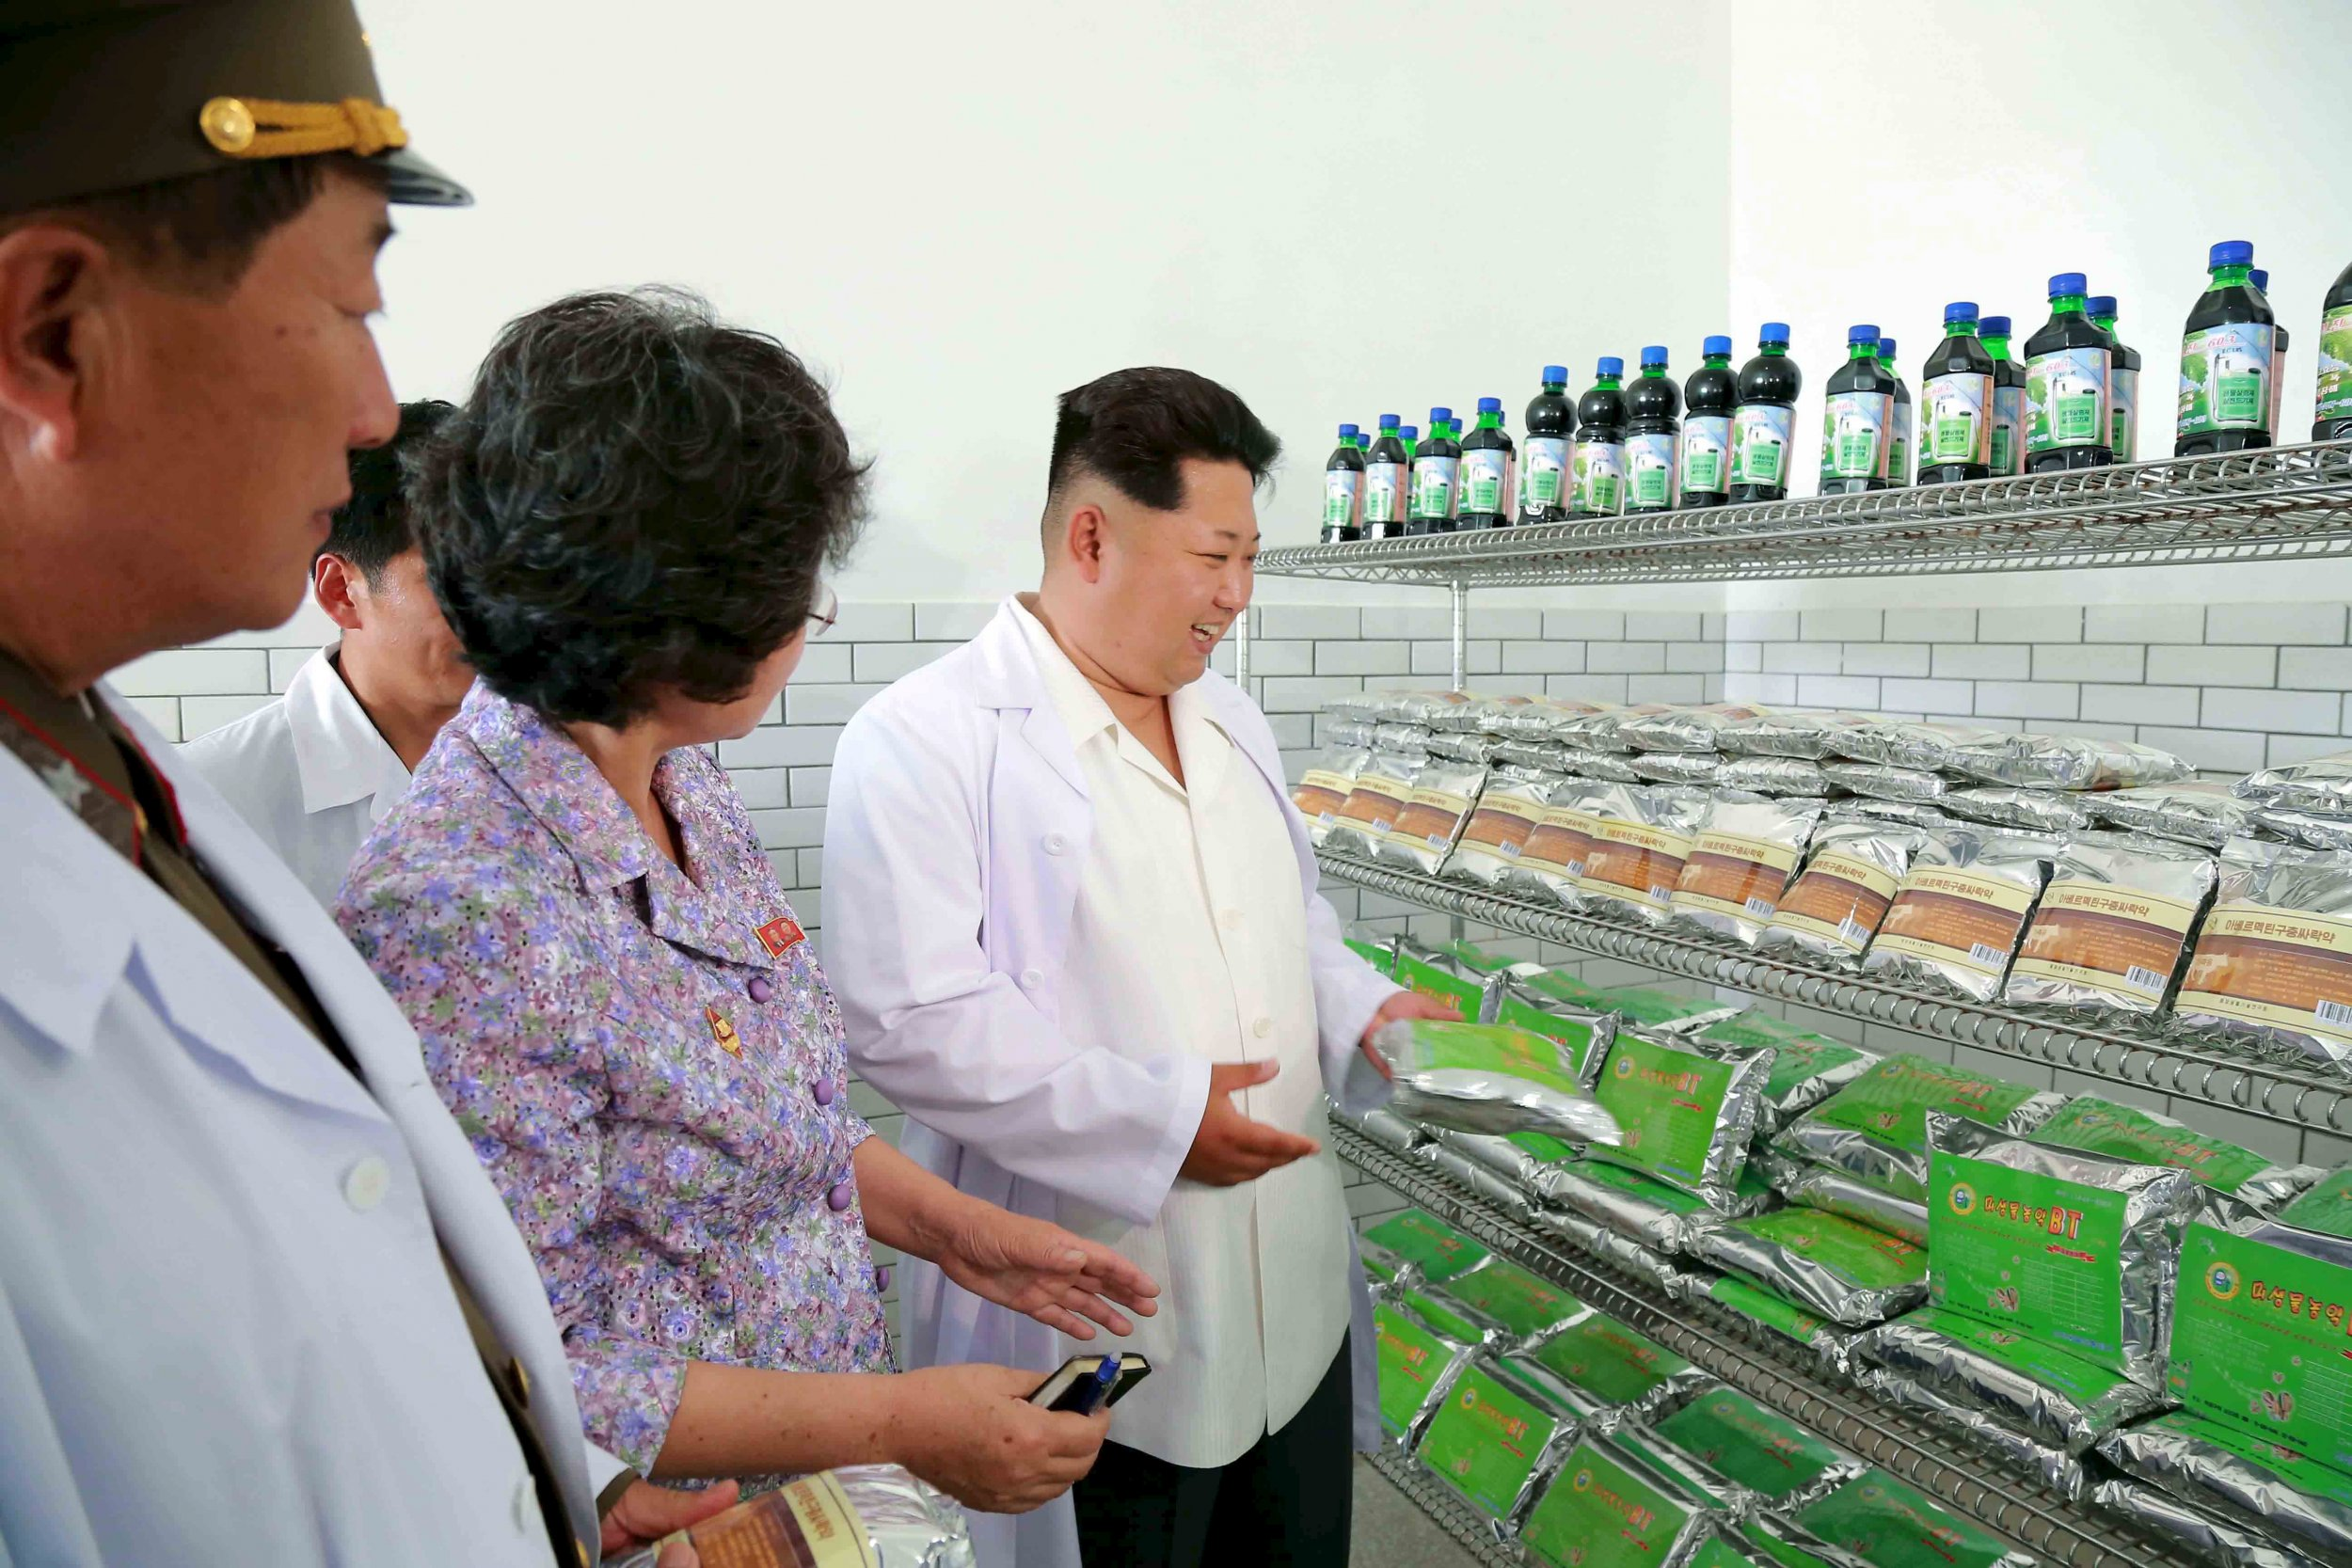 What we know, and what we don't, about Kim Jong Un's biological weapons of mass destruction